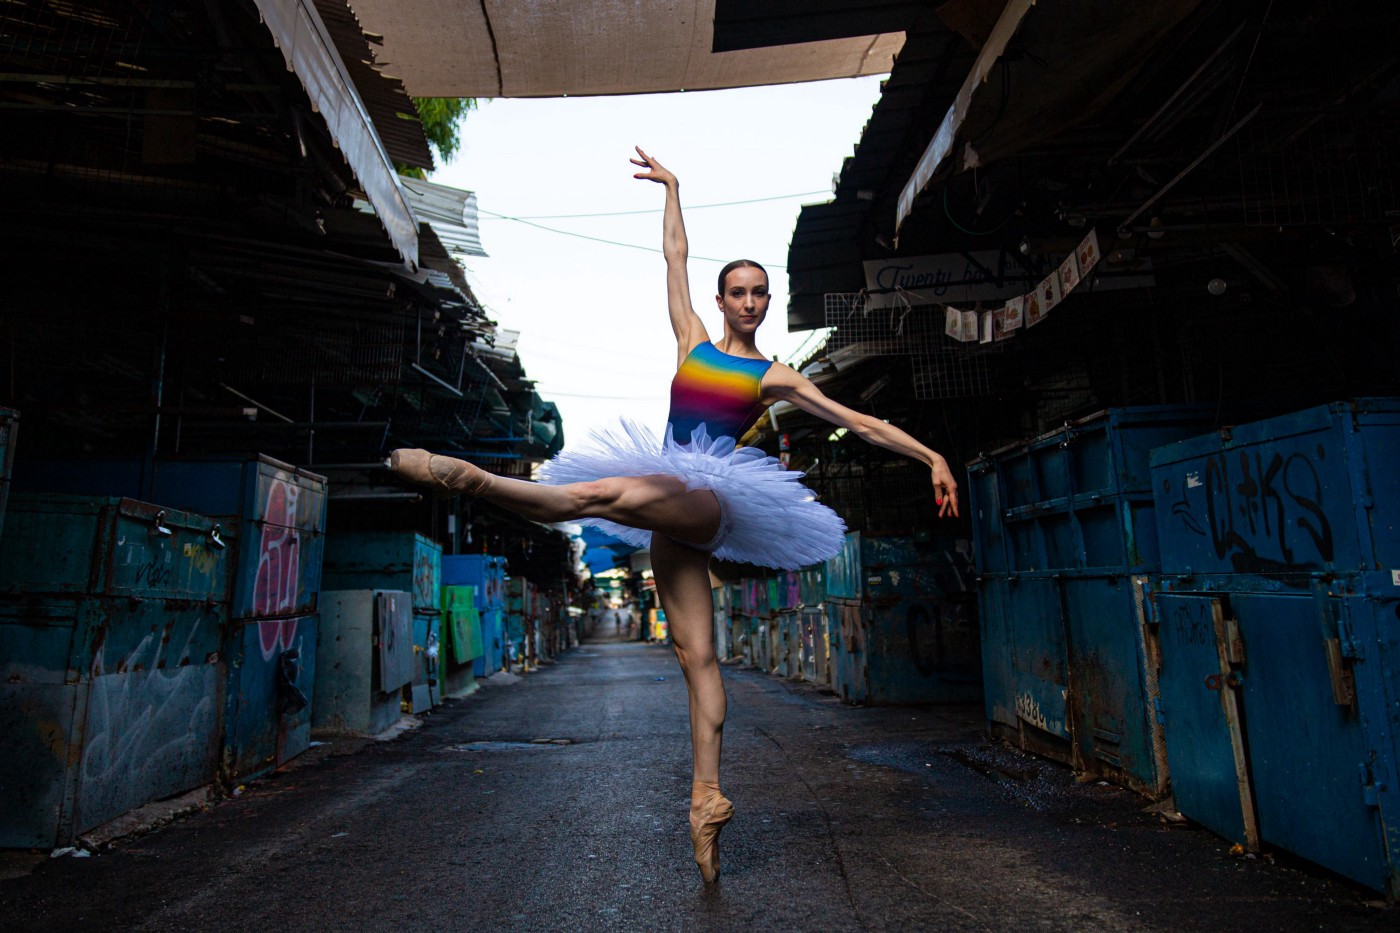 A ballerina dances in a street.